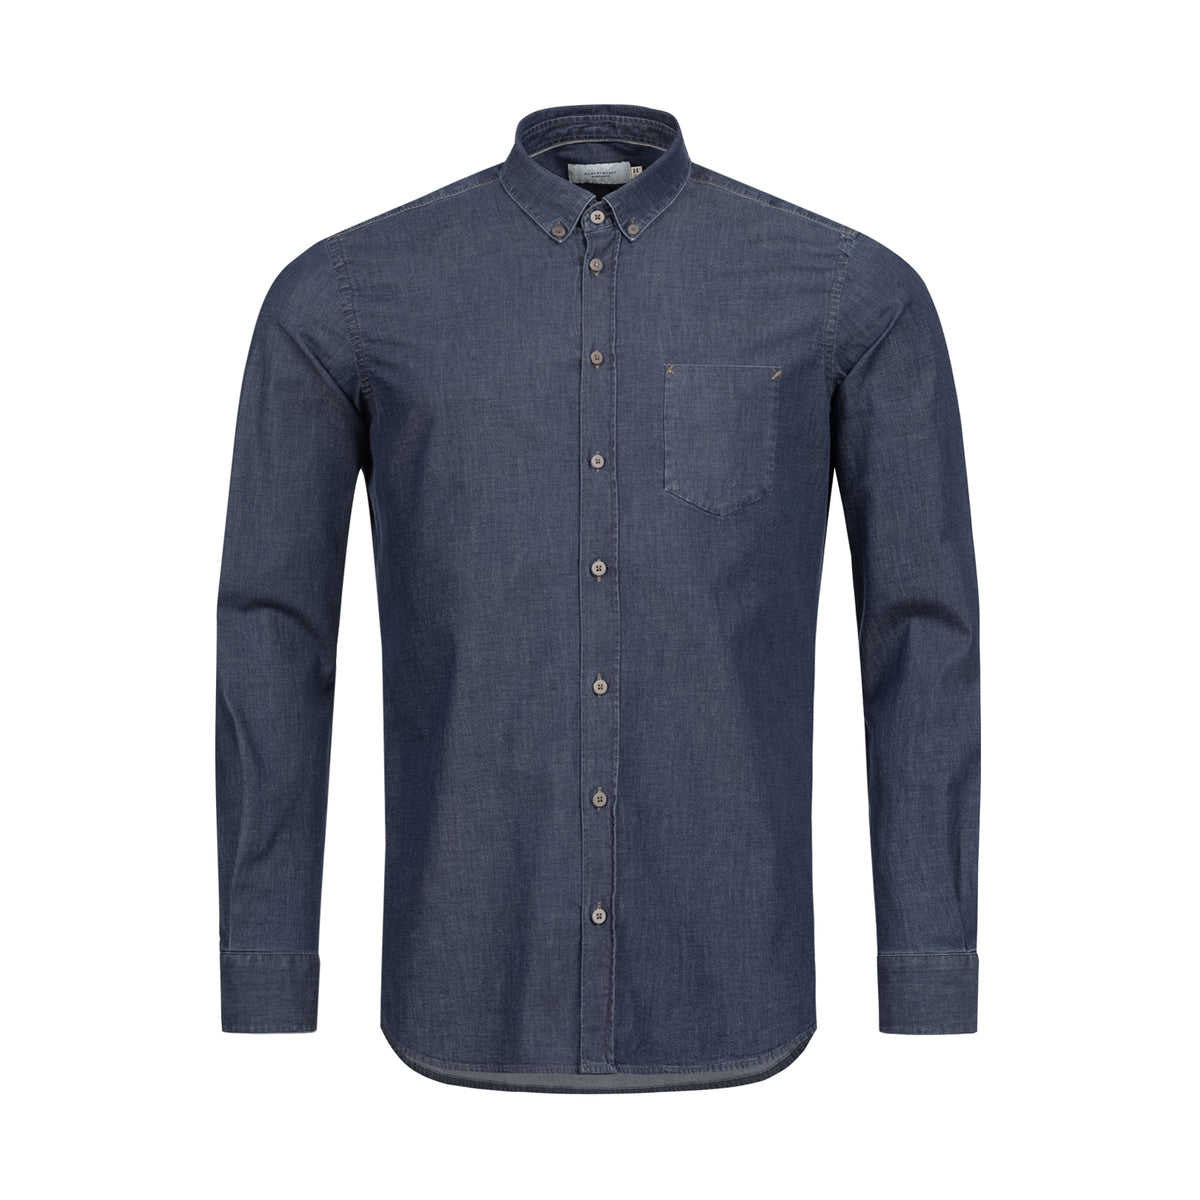 Light Denim Collar Shirt